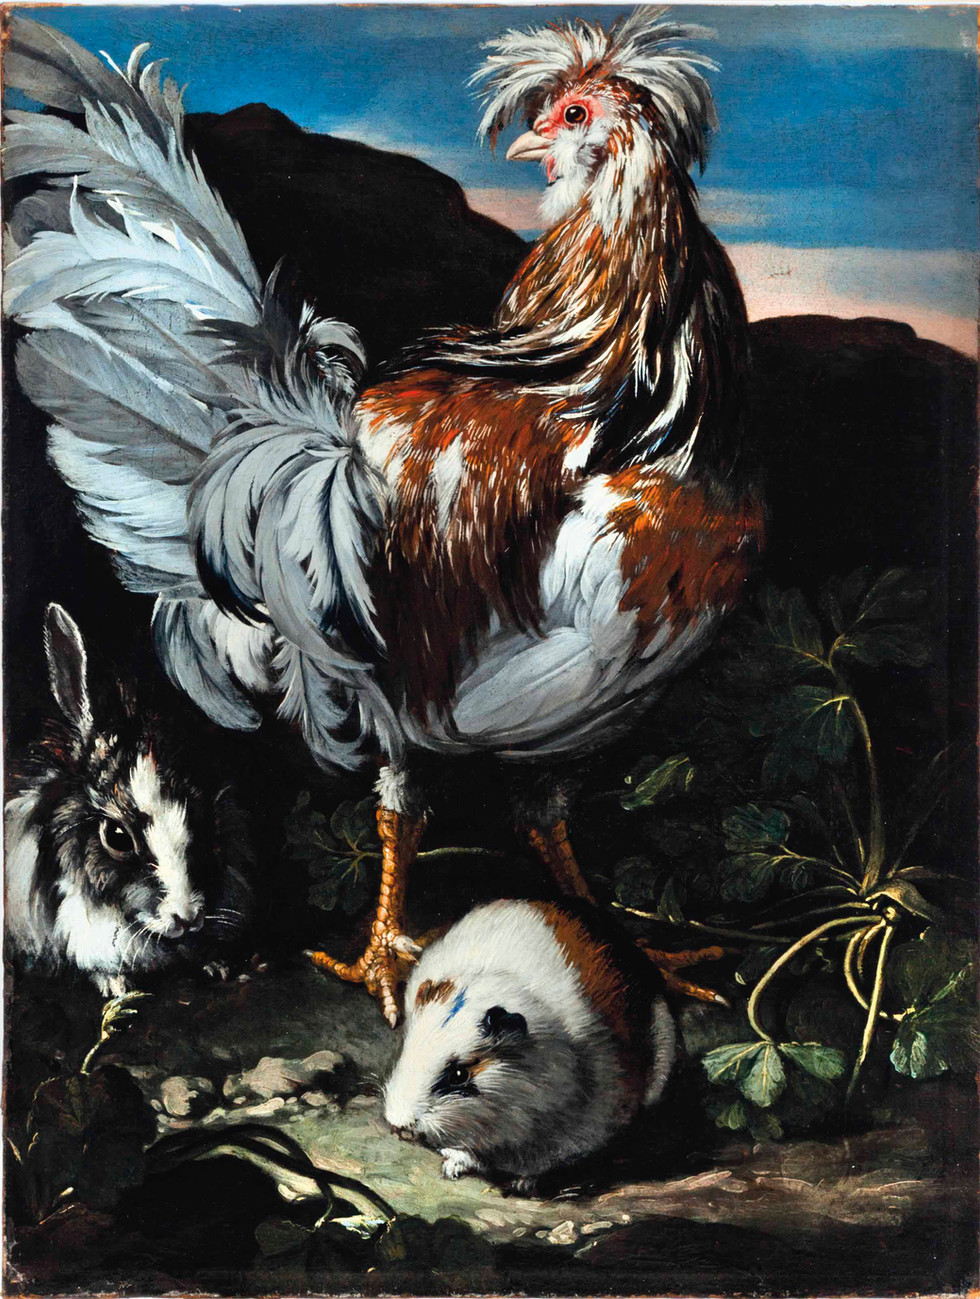 A Rooster, Rabbit and Guinea Pig